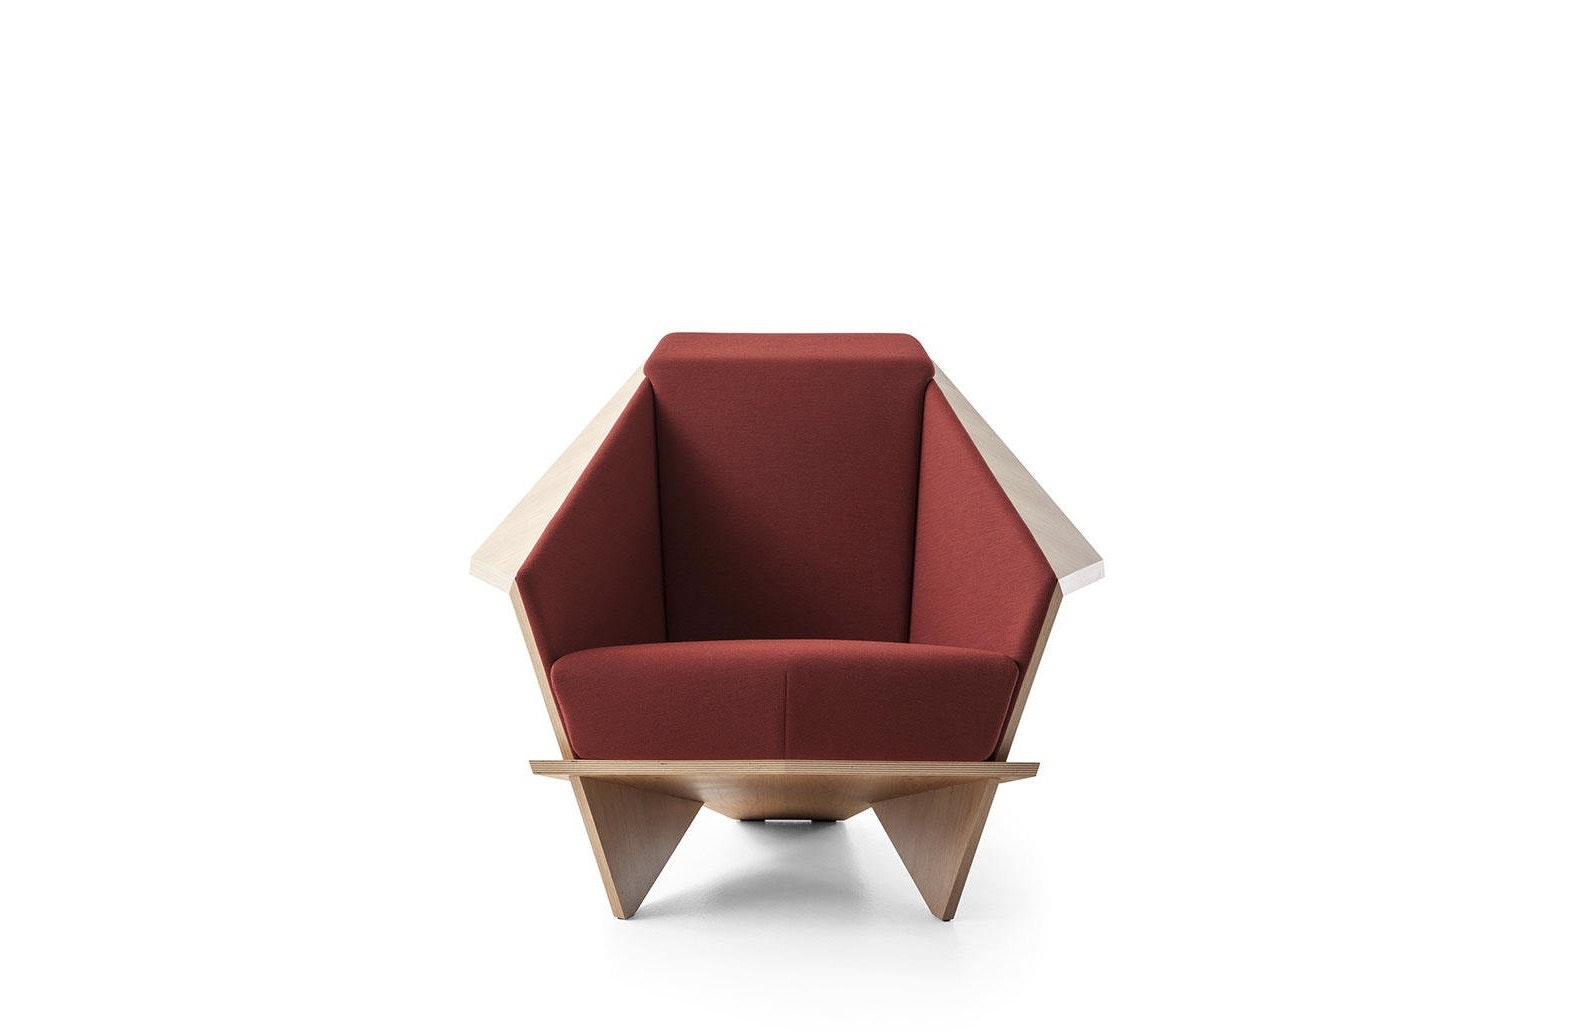 Can you guess which famous architect designed this newly re-released chair?